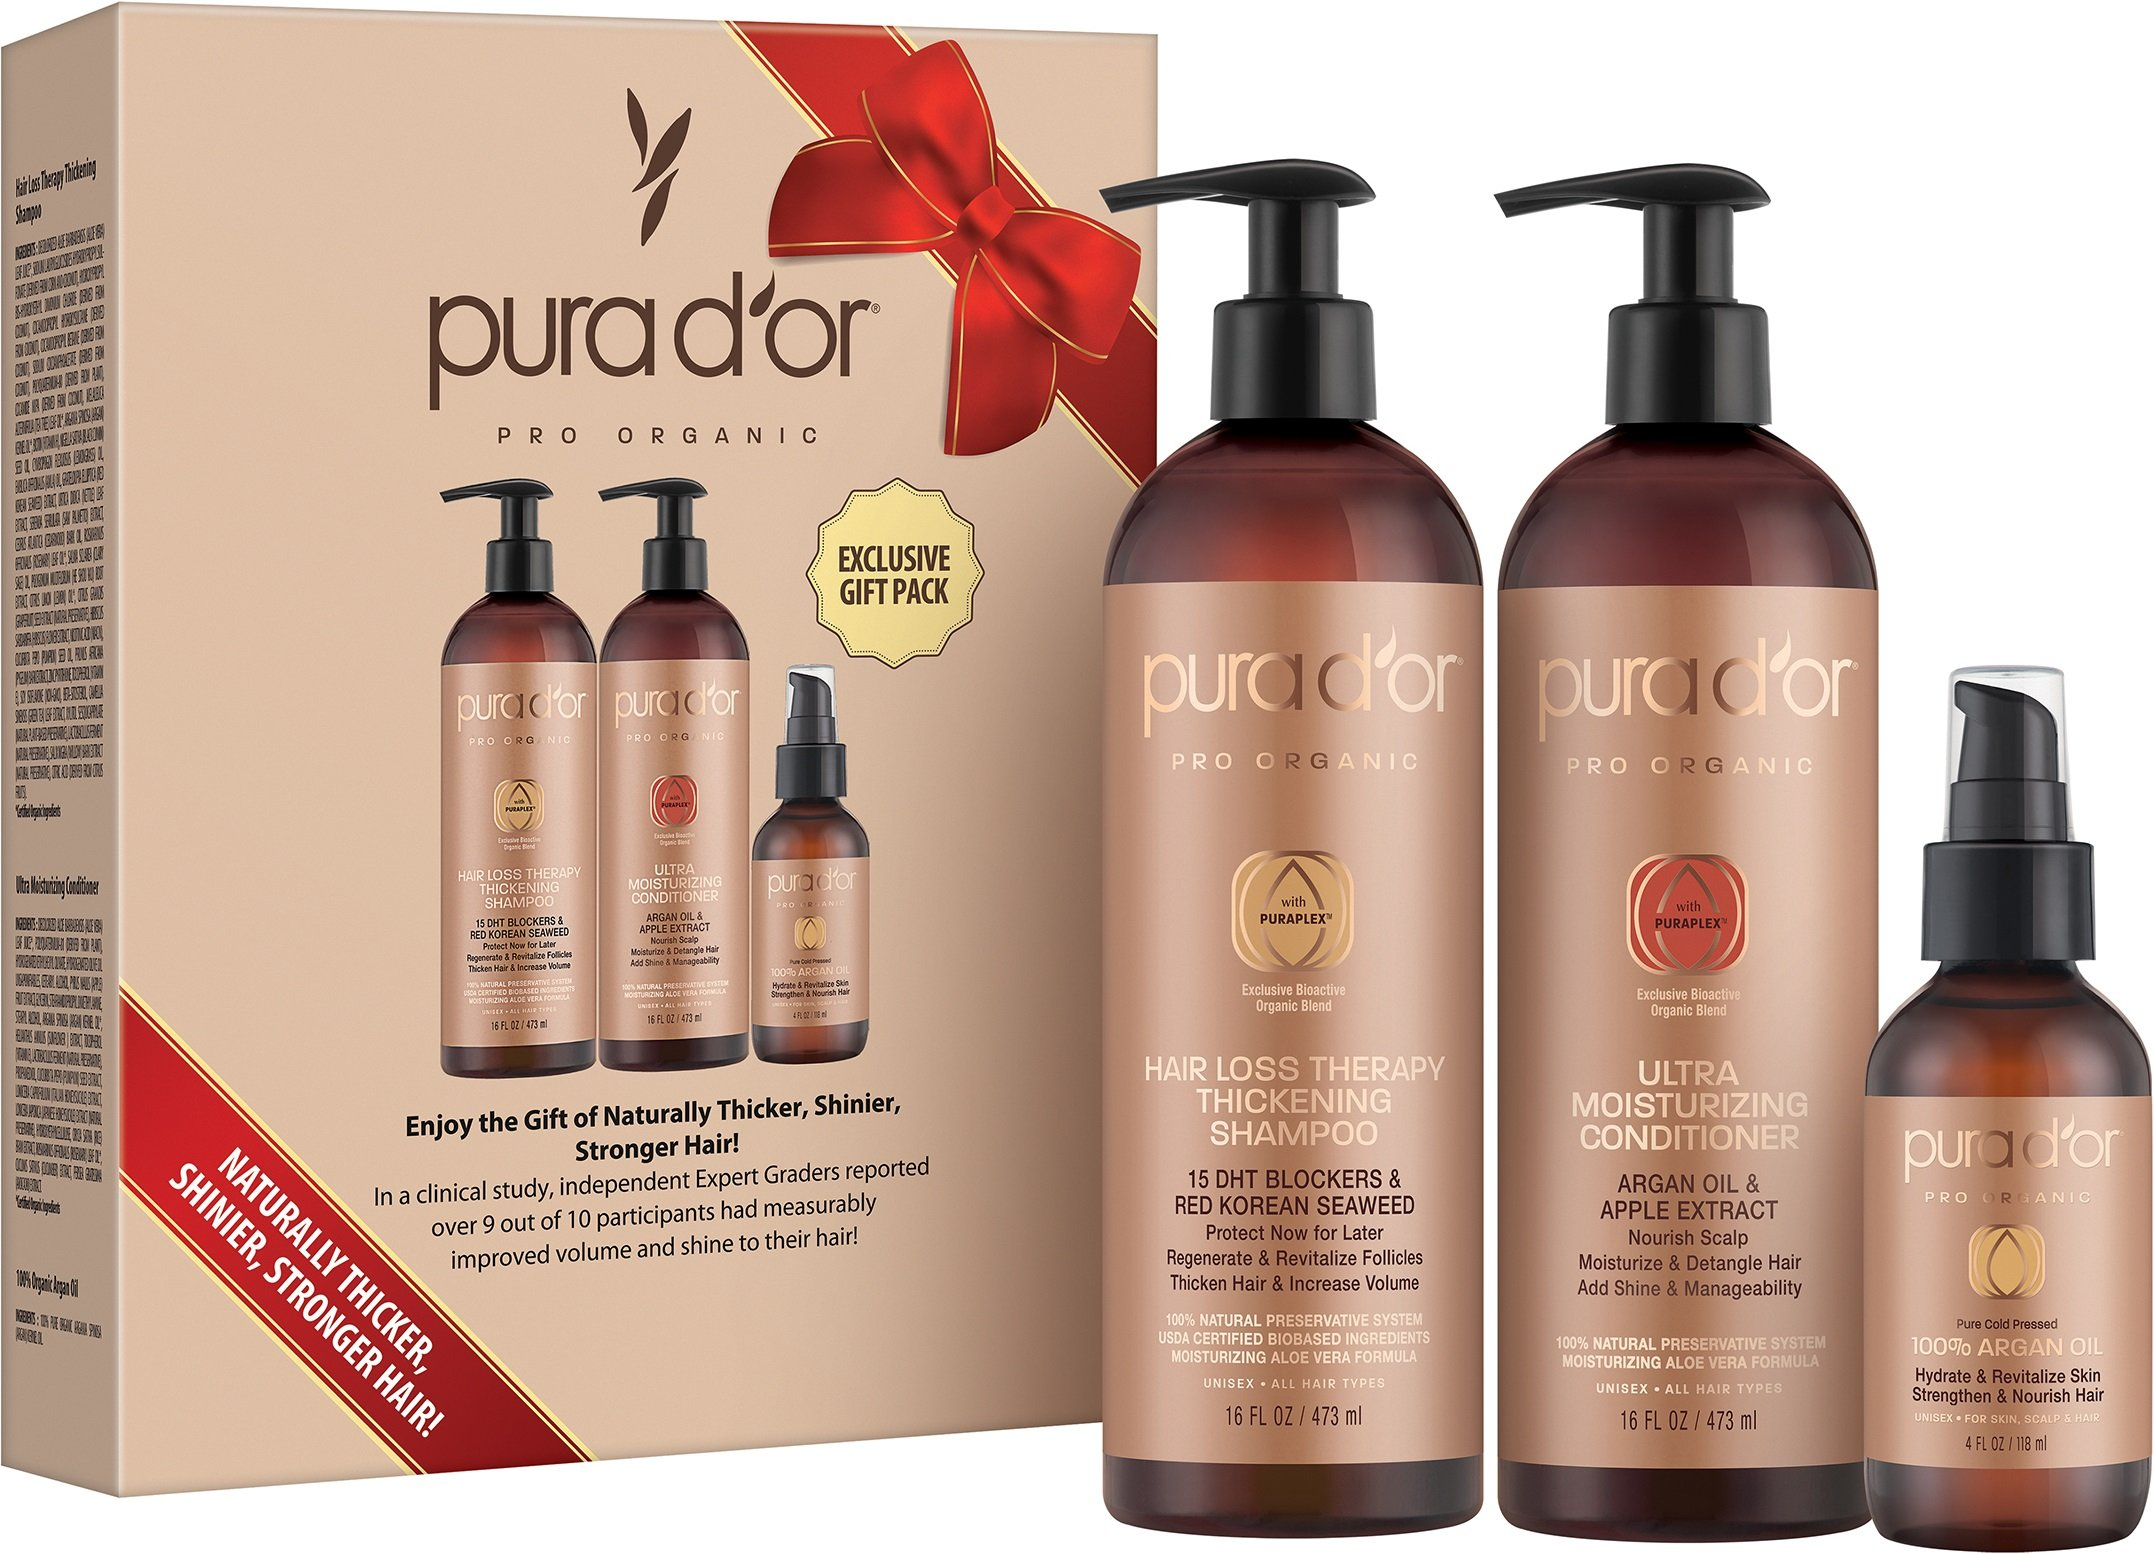 PURA D'OR Clinically Proven Professional Hair Loss Therapy Thickening Gift Set Includes FREE BONUS Organic 4 oz Argan Oil